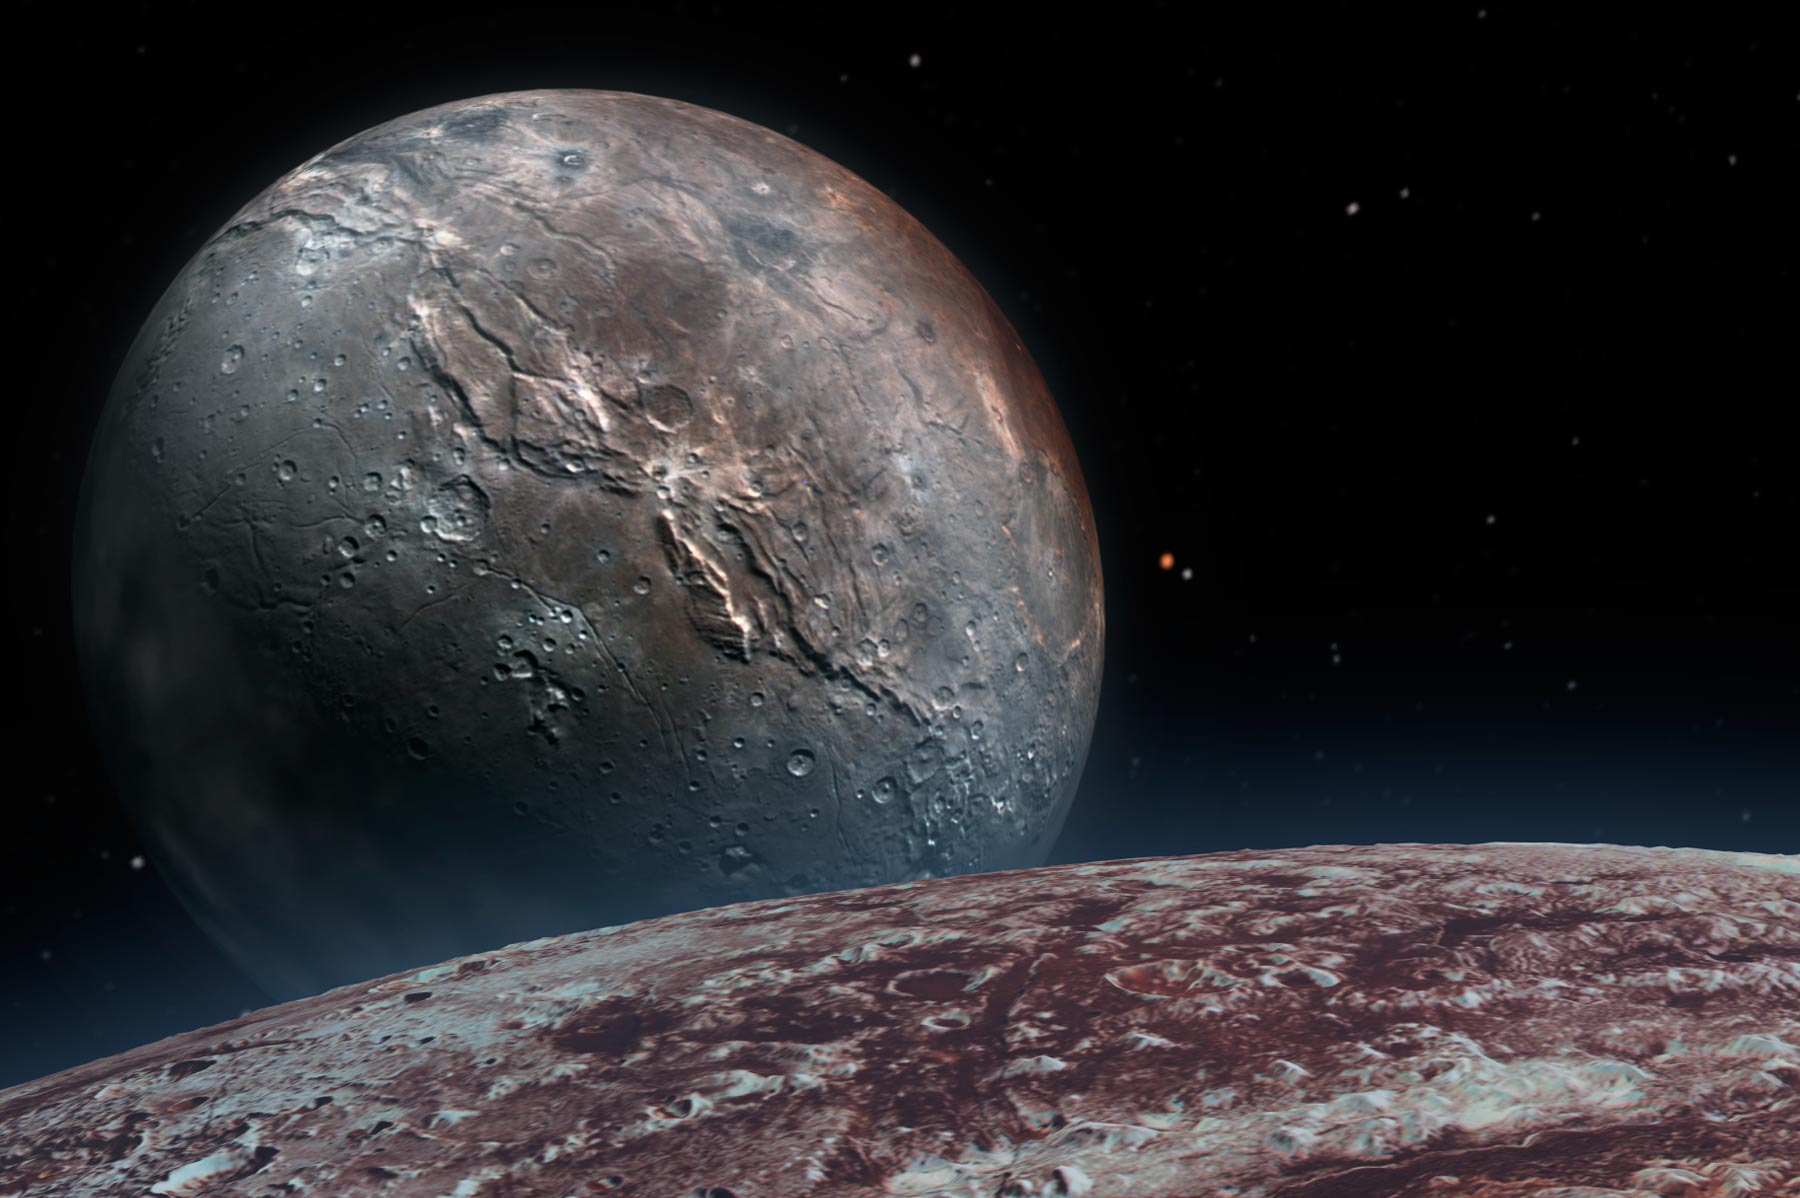 Tour 3D Pluto in New Portable Virtual-Reality View